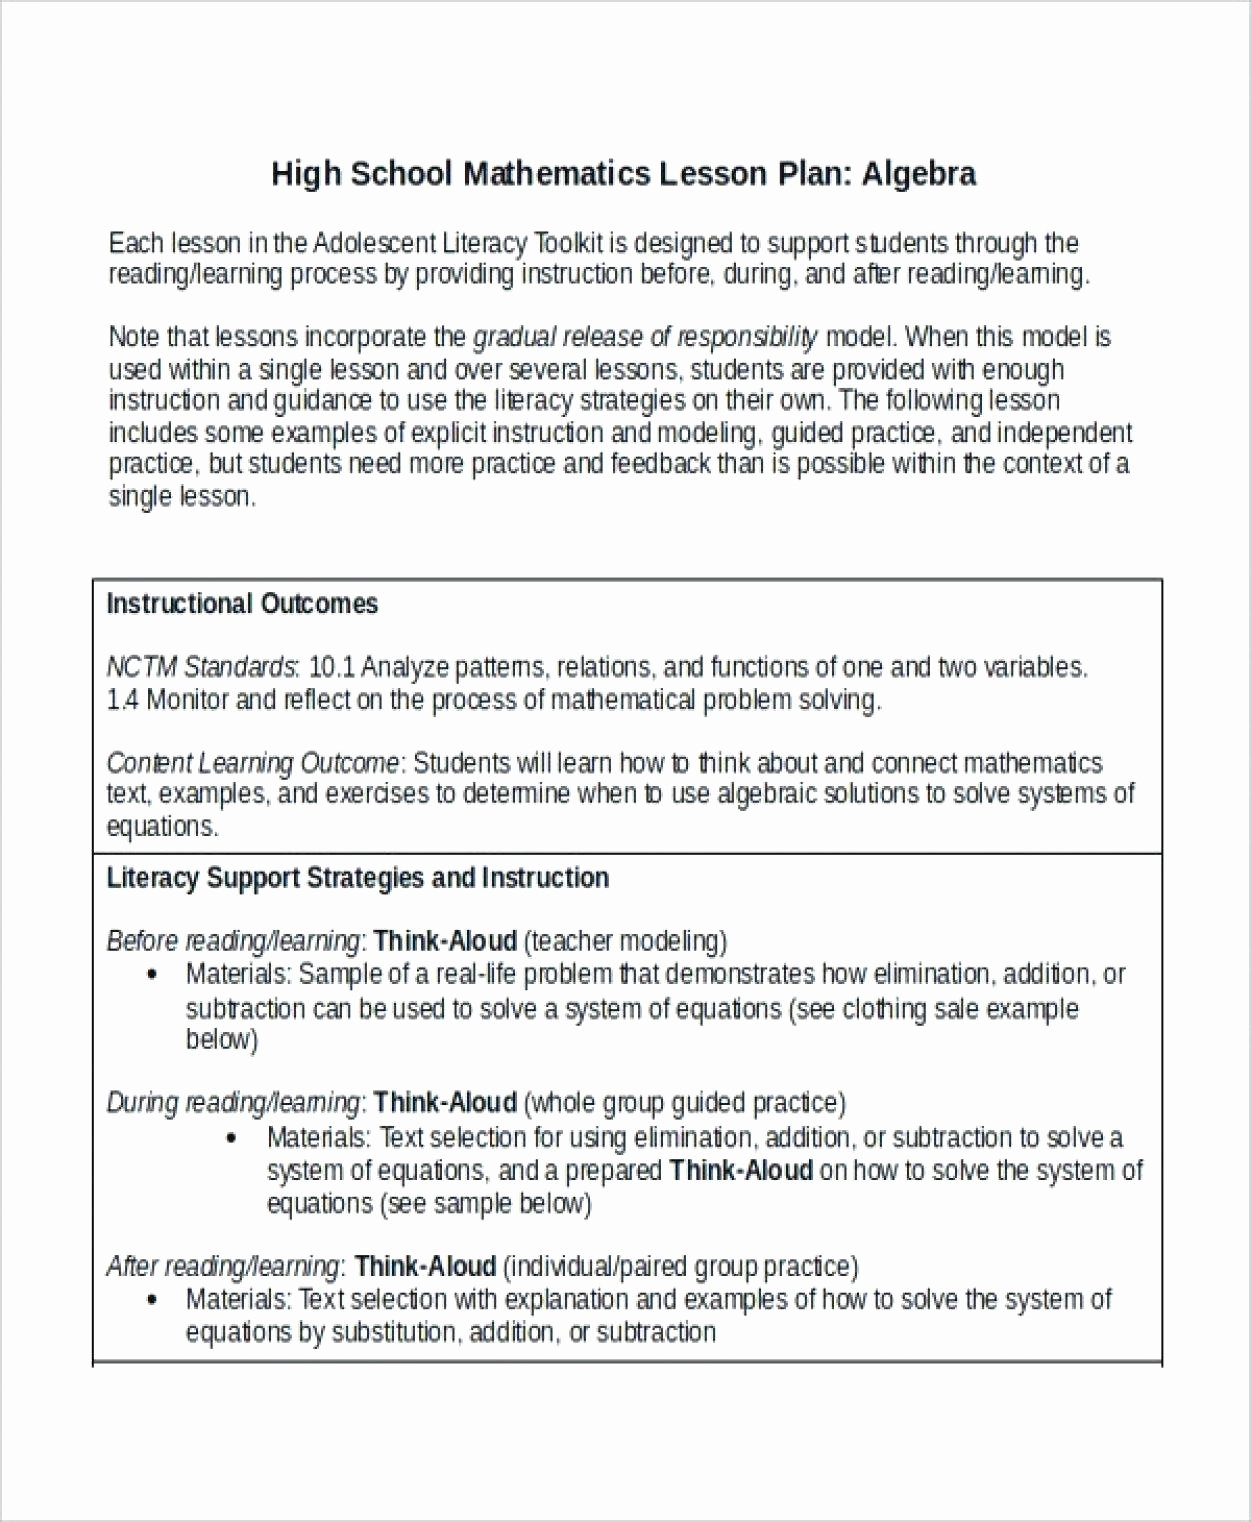 High School Lesson Plan Template Awesome High School Algebra Lesson Plans – Aplicacionesblackberry